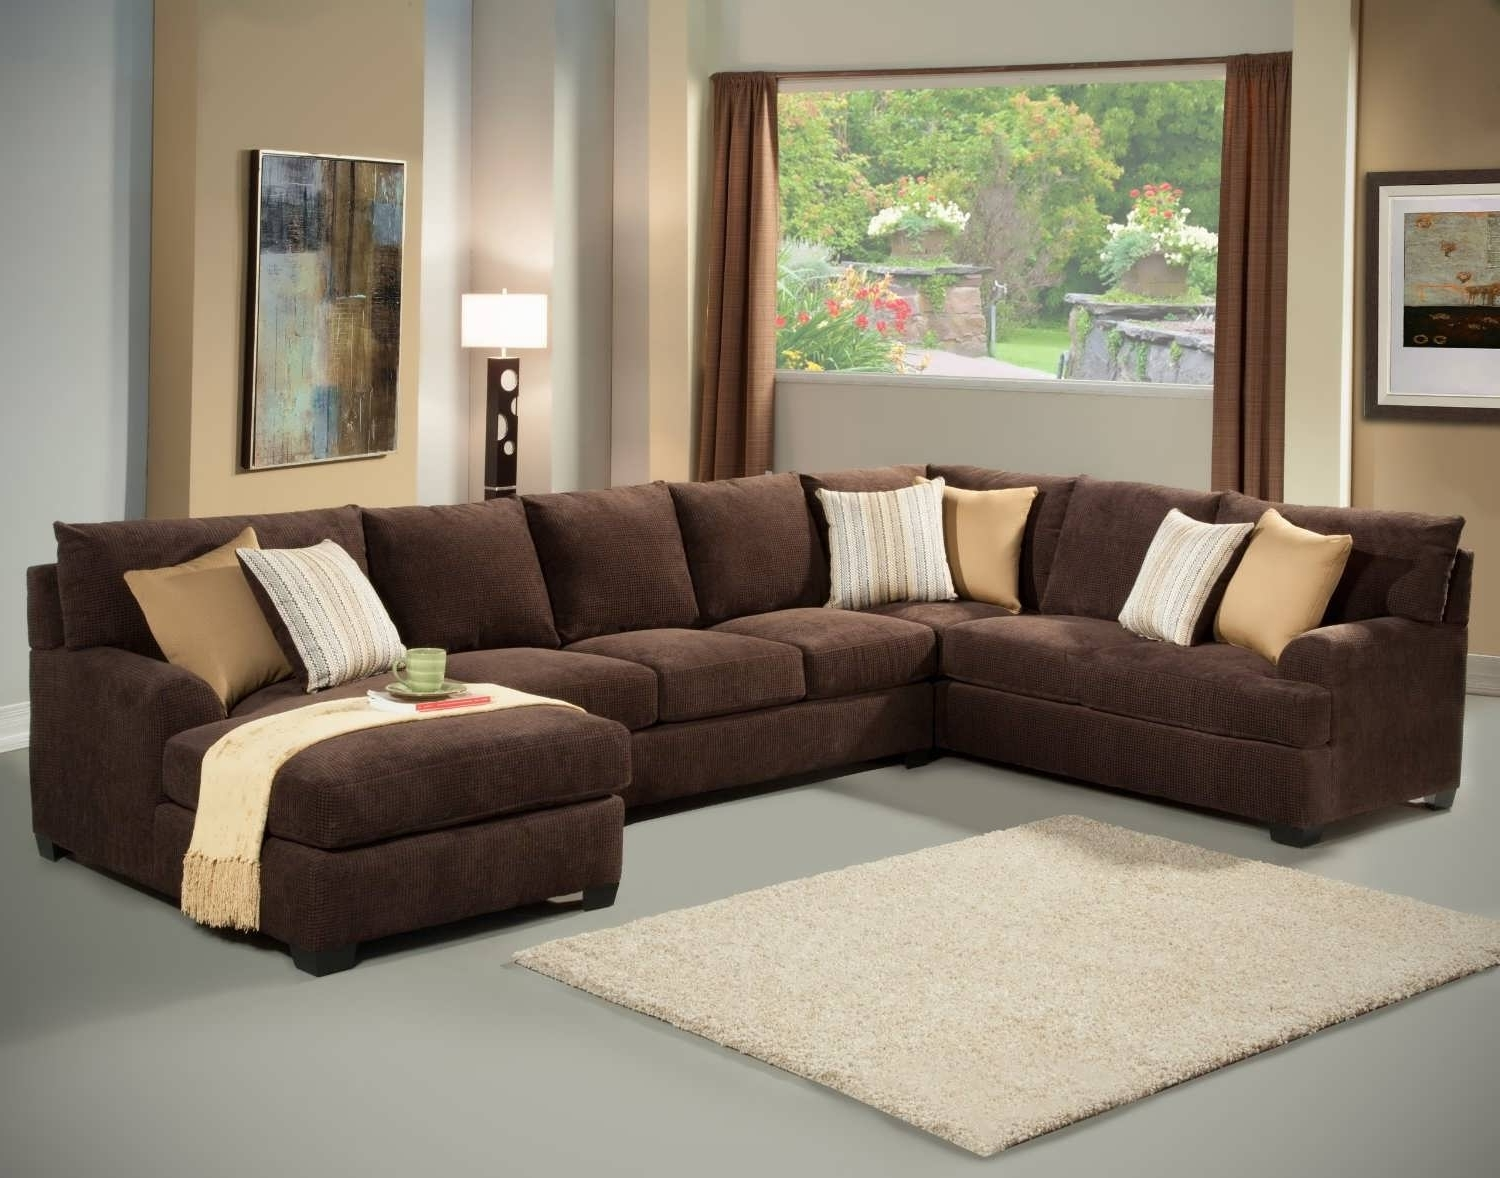 Microfiber Sectional Sofas With Chaise Pertaining To Most Recent Sofa : Grey Sectional Sofa Brown Sectional Couch Sectional Couches (View 11 of 15)